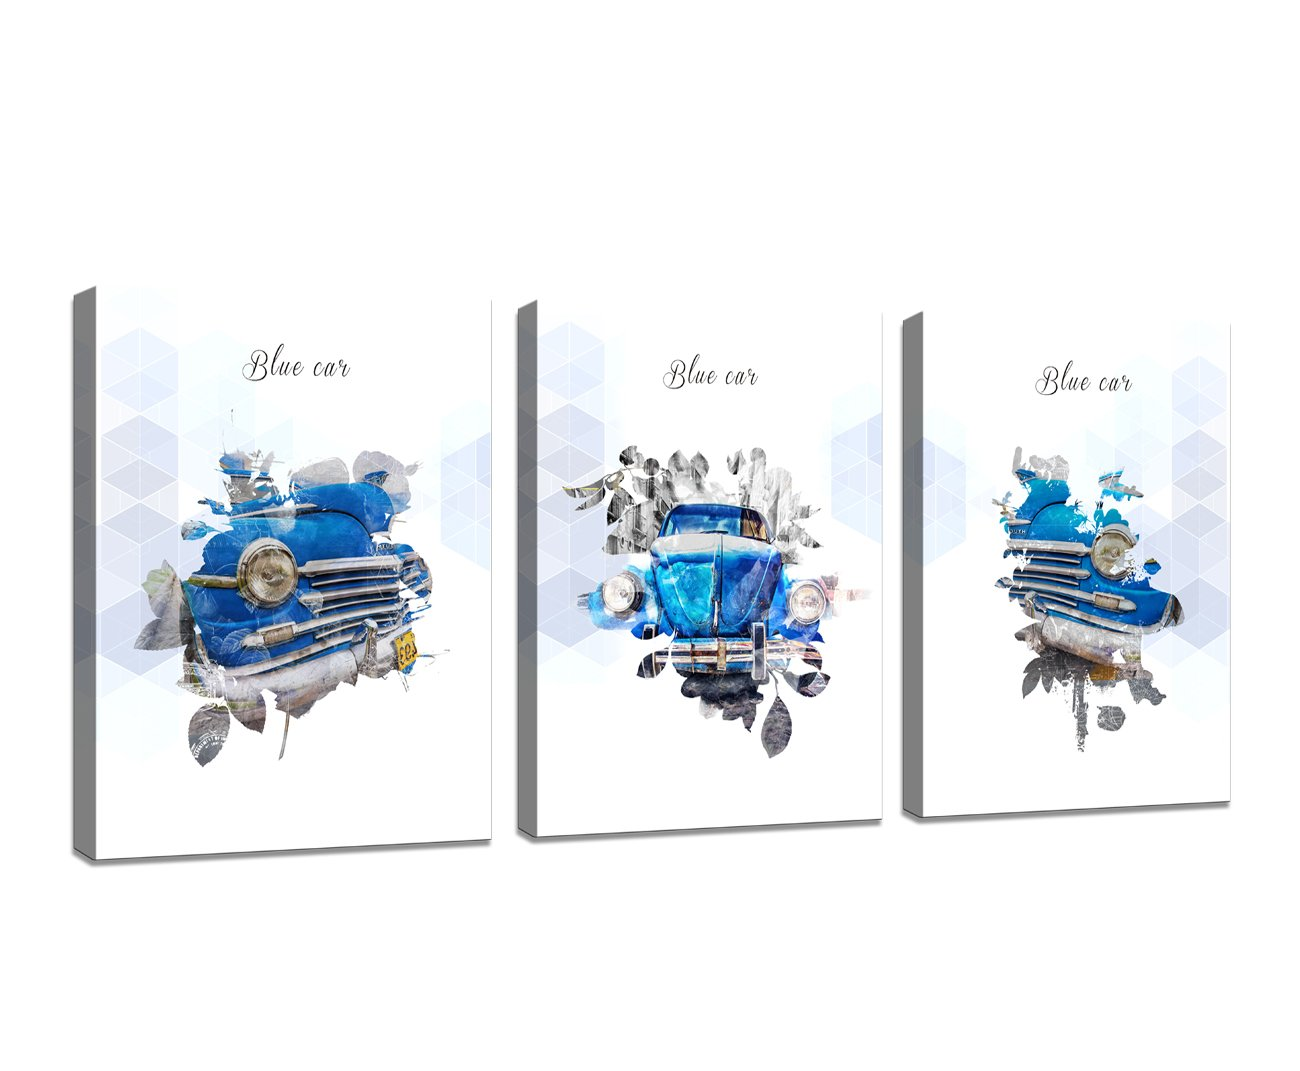 Baisuart Wall art canvas European style decorative painting HD Blue car abstract picture by Baisuart